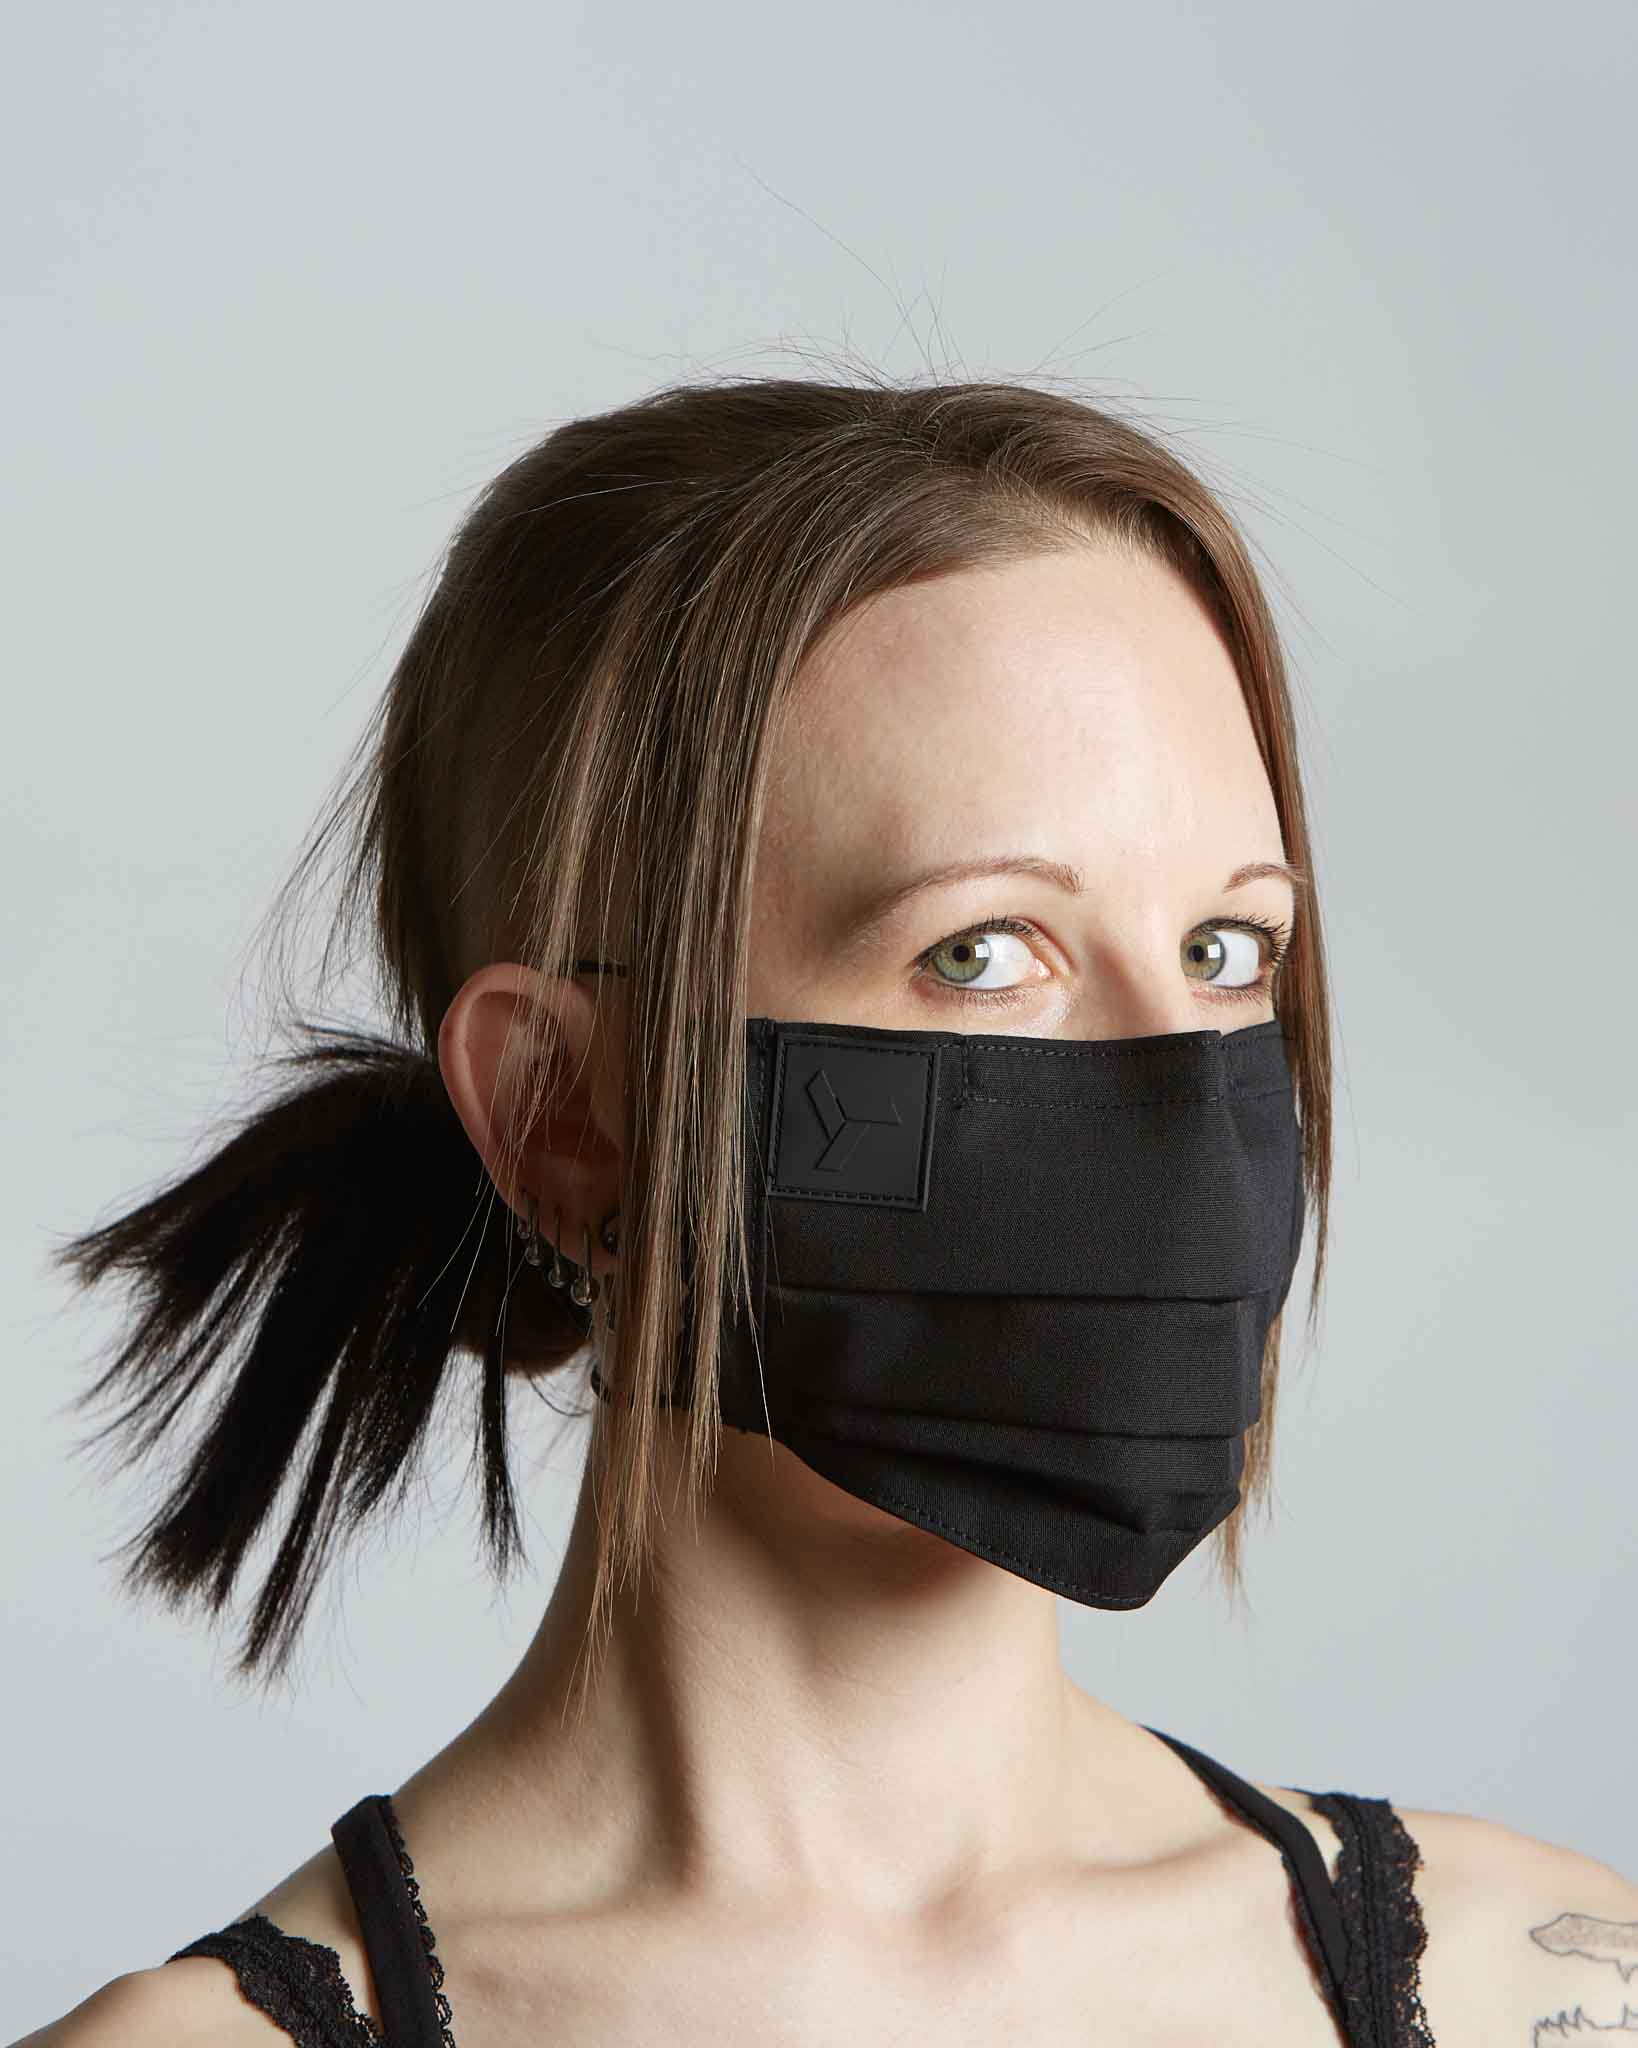 Designer COVID mask with adjustable straps